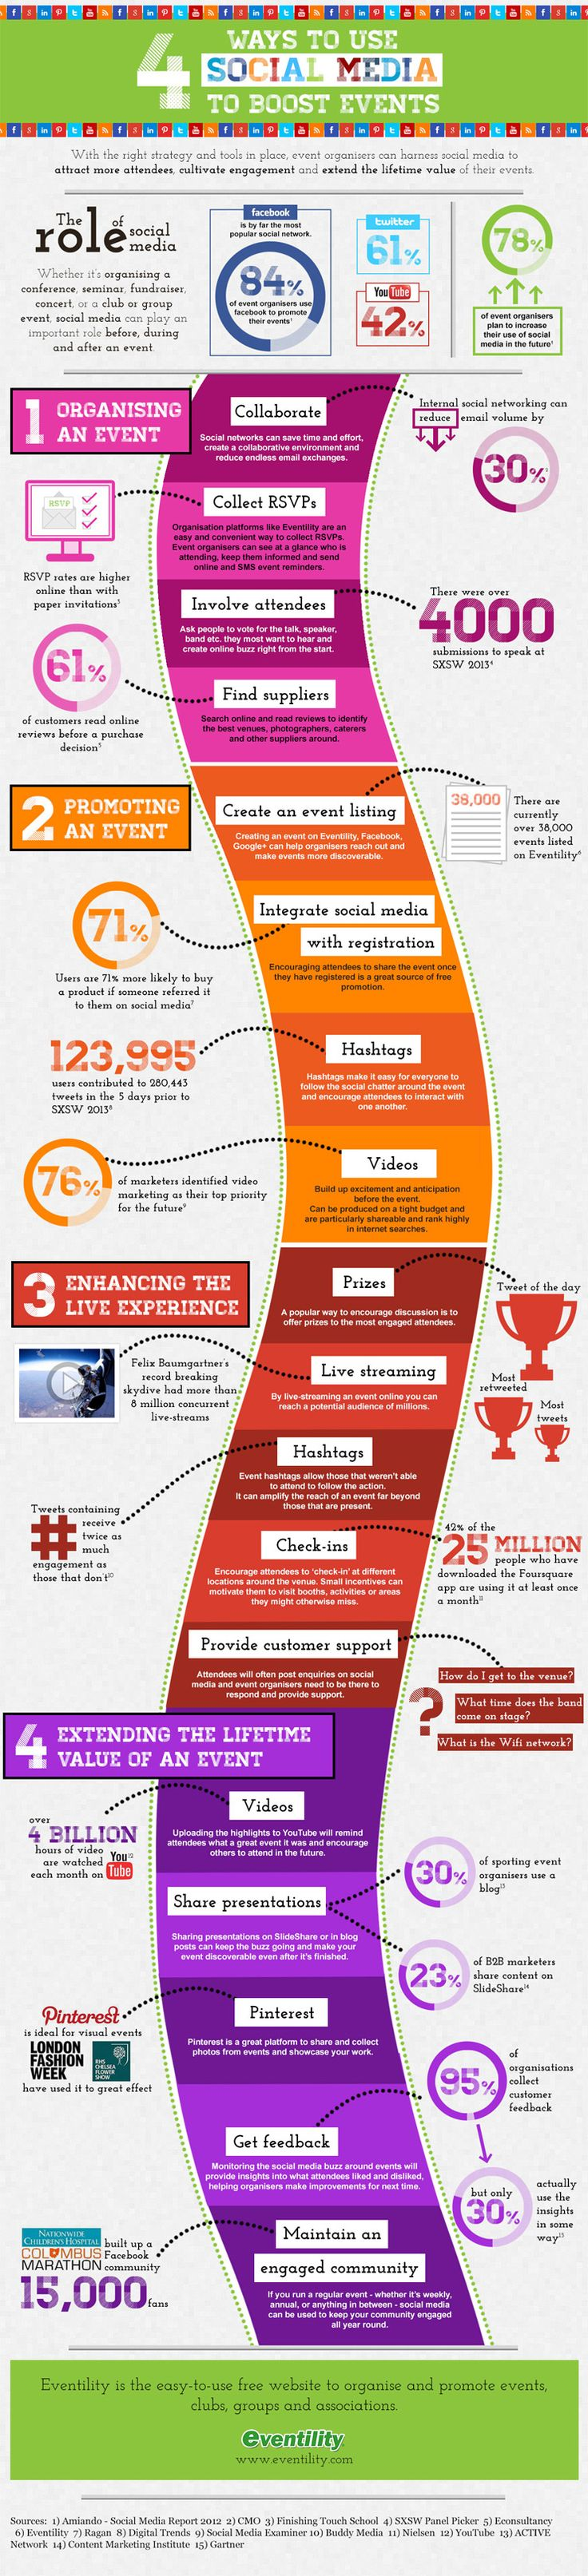 4 Incredibly Easy Ways to Use Social Media to Boost Events #infographic #socialmedia